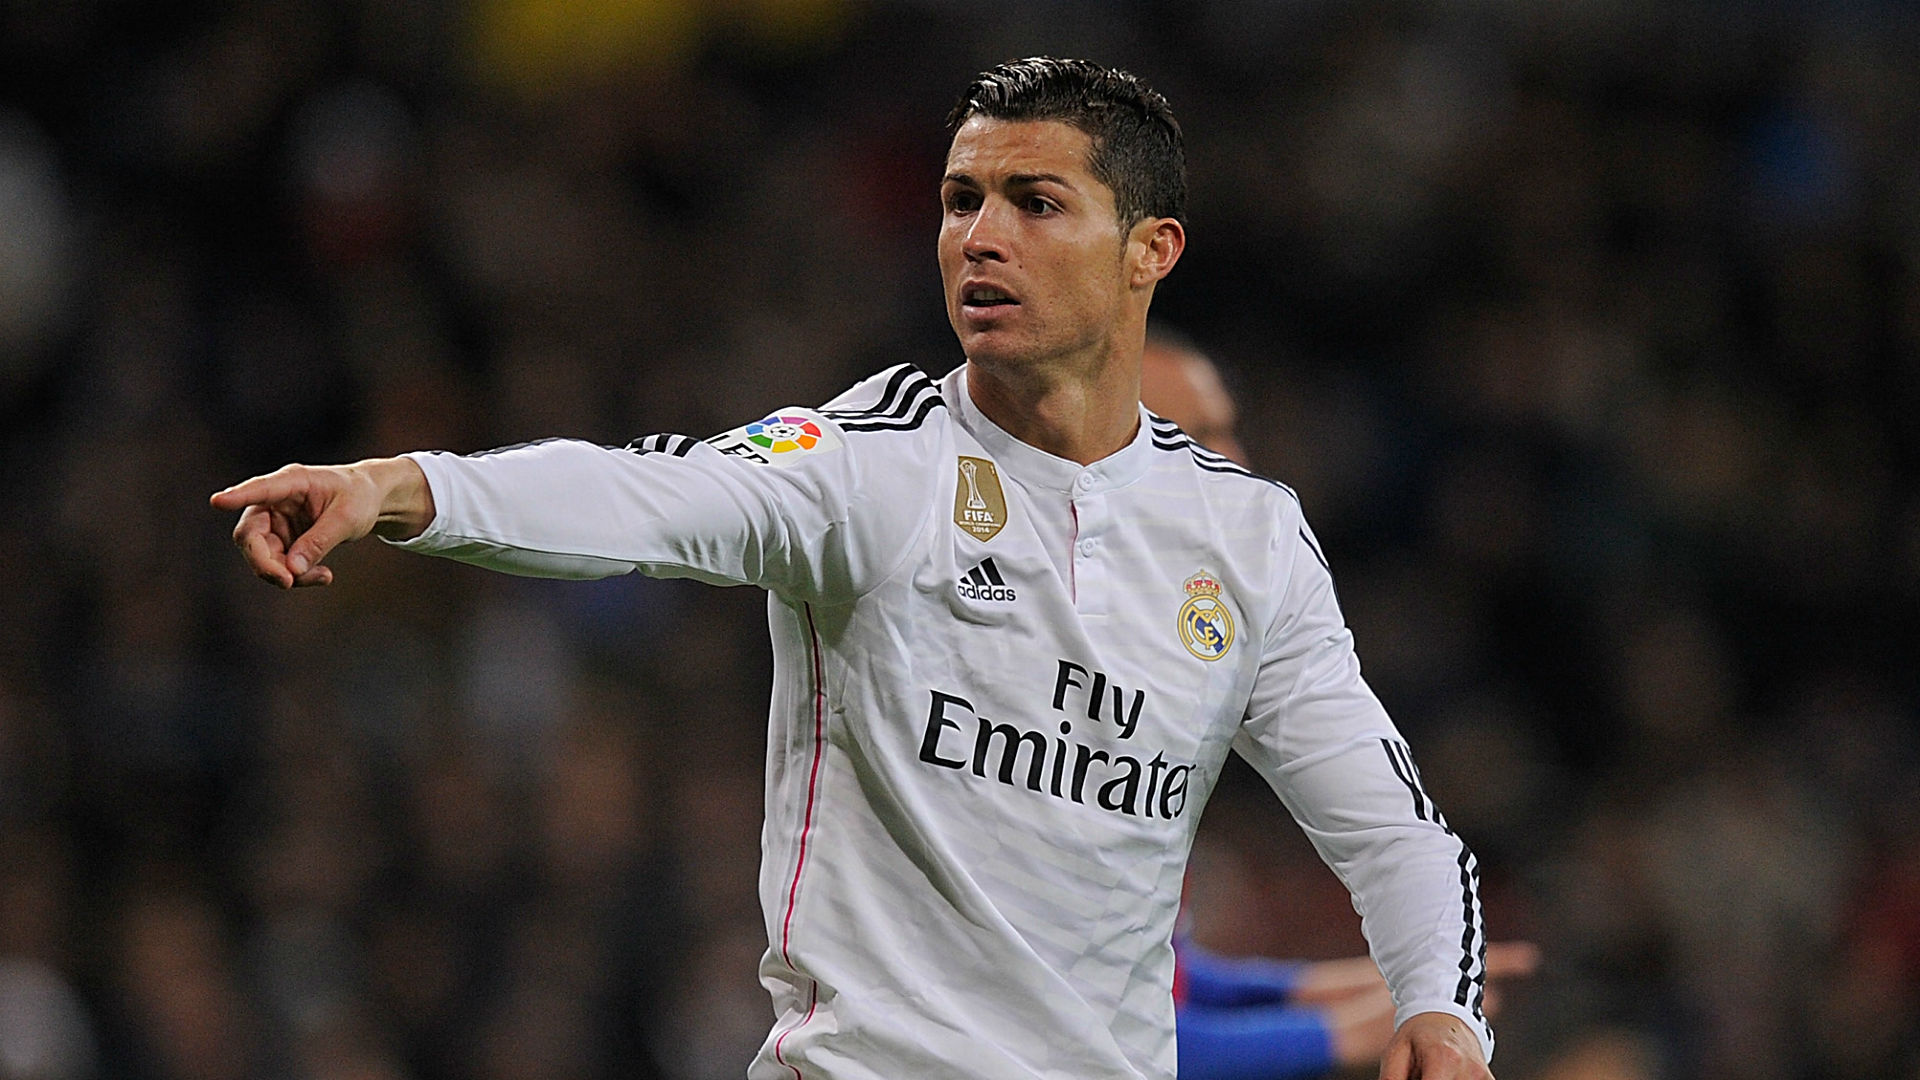 PSG places €125 million bid for Real Madrid's Cristiano Ronaldo, report says